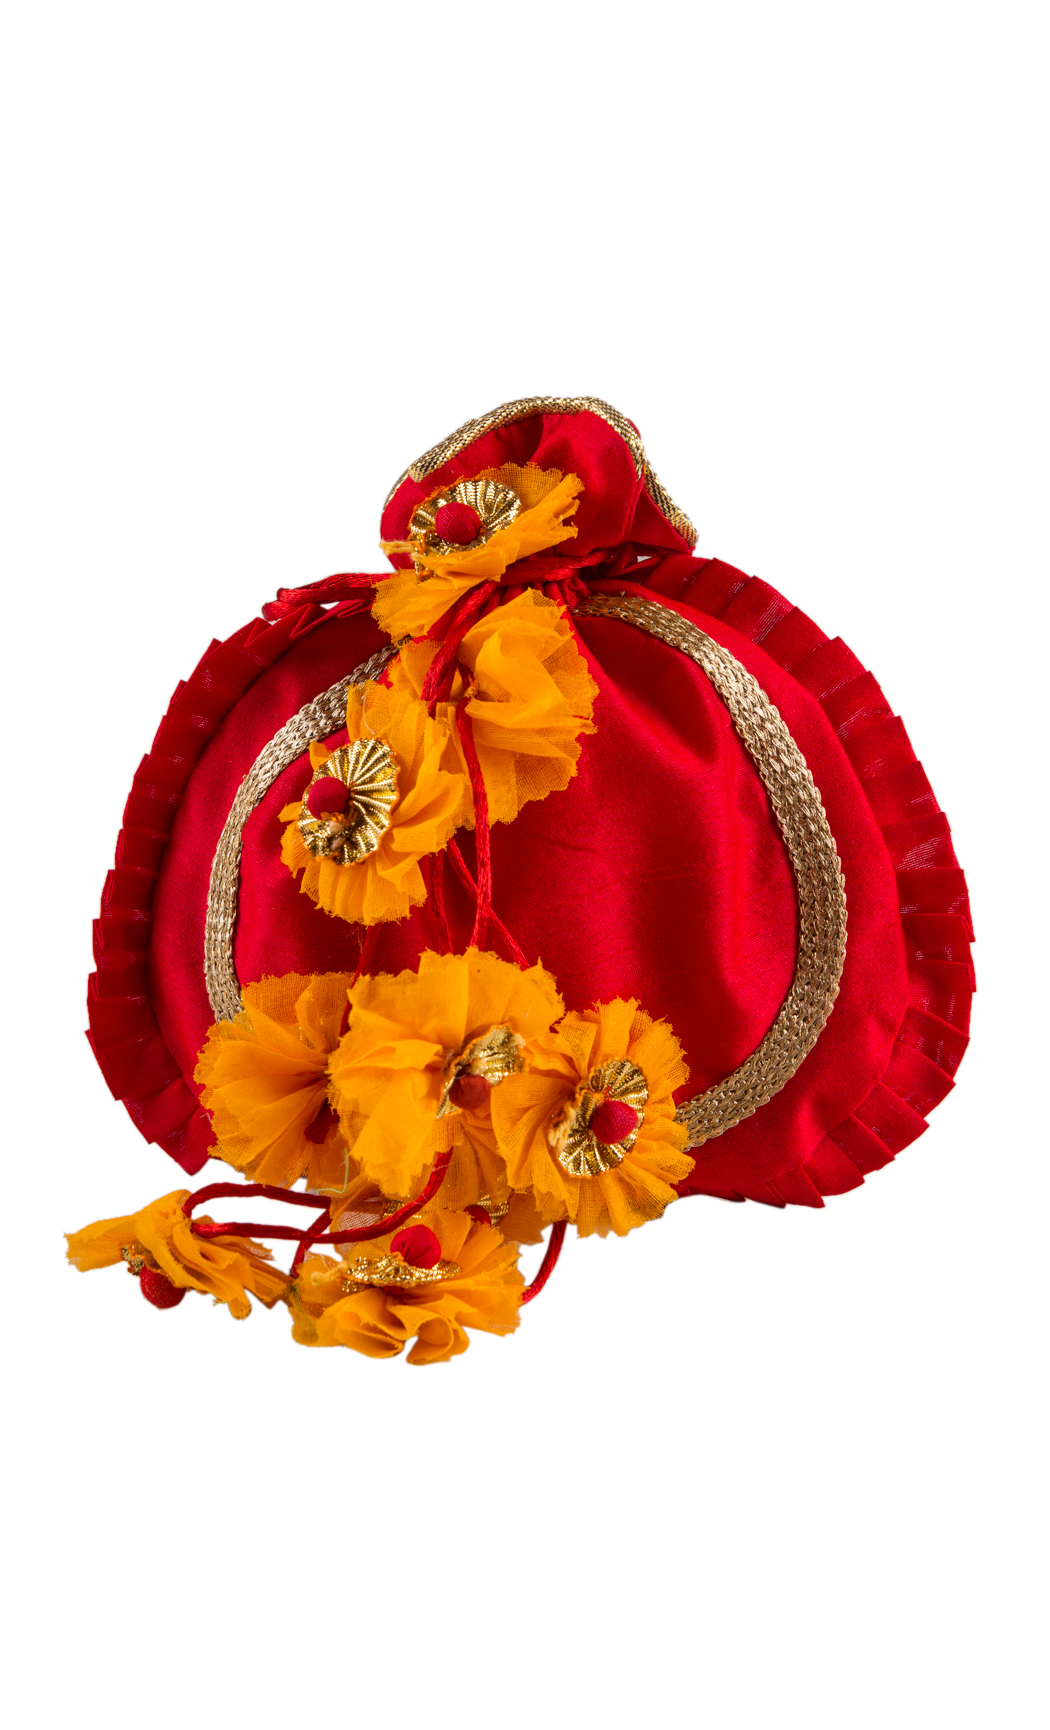 Red Round Potli with Gold Gota Work and Yellow Floral Tassels - Buy Online